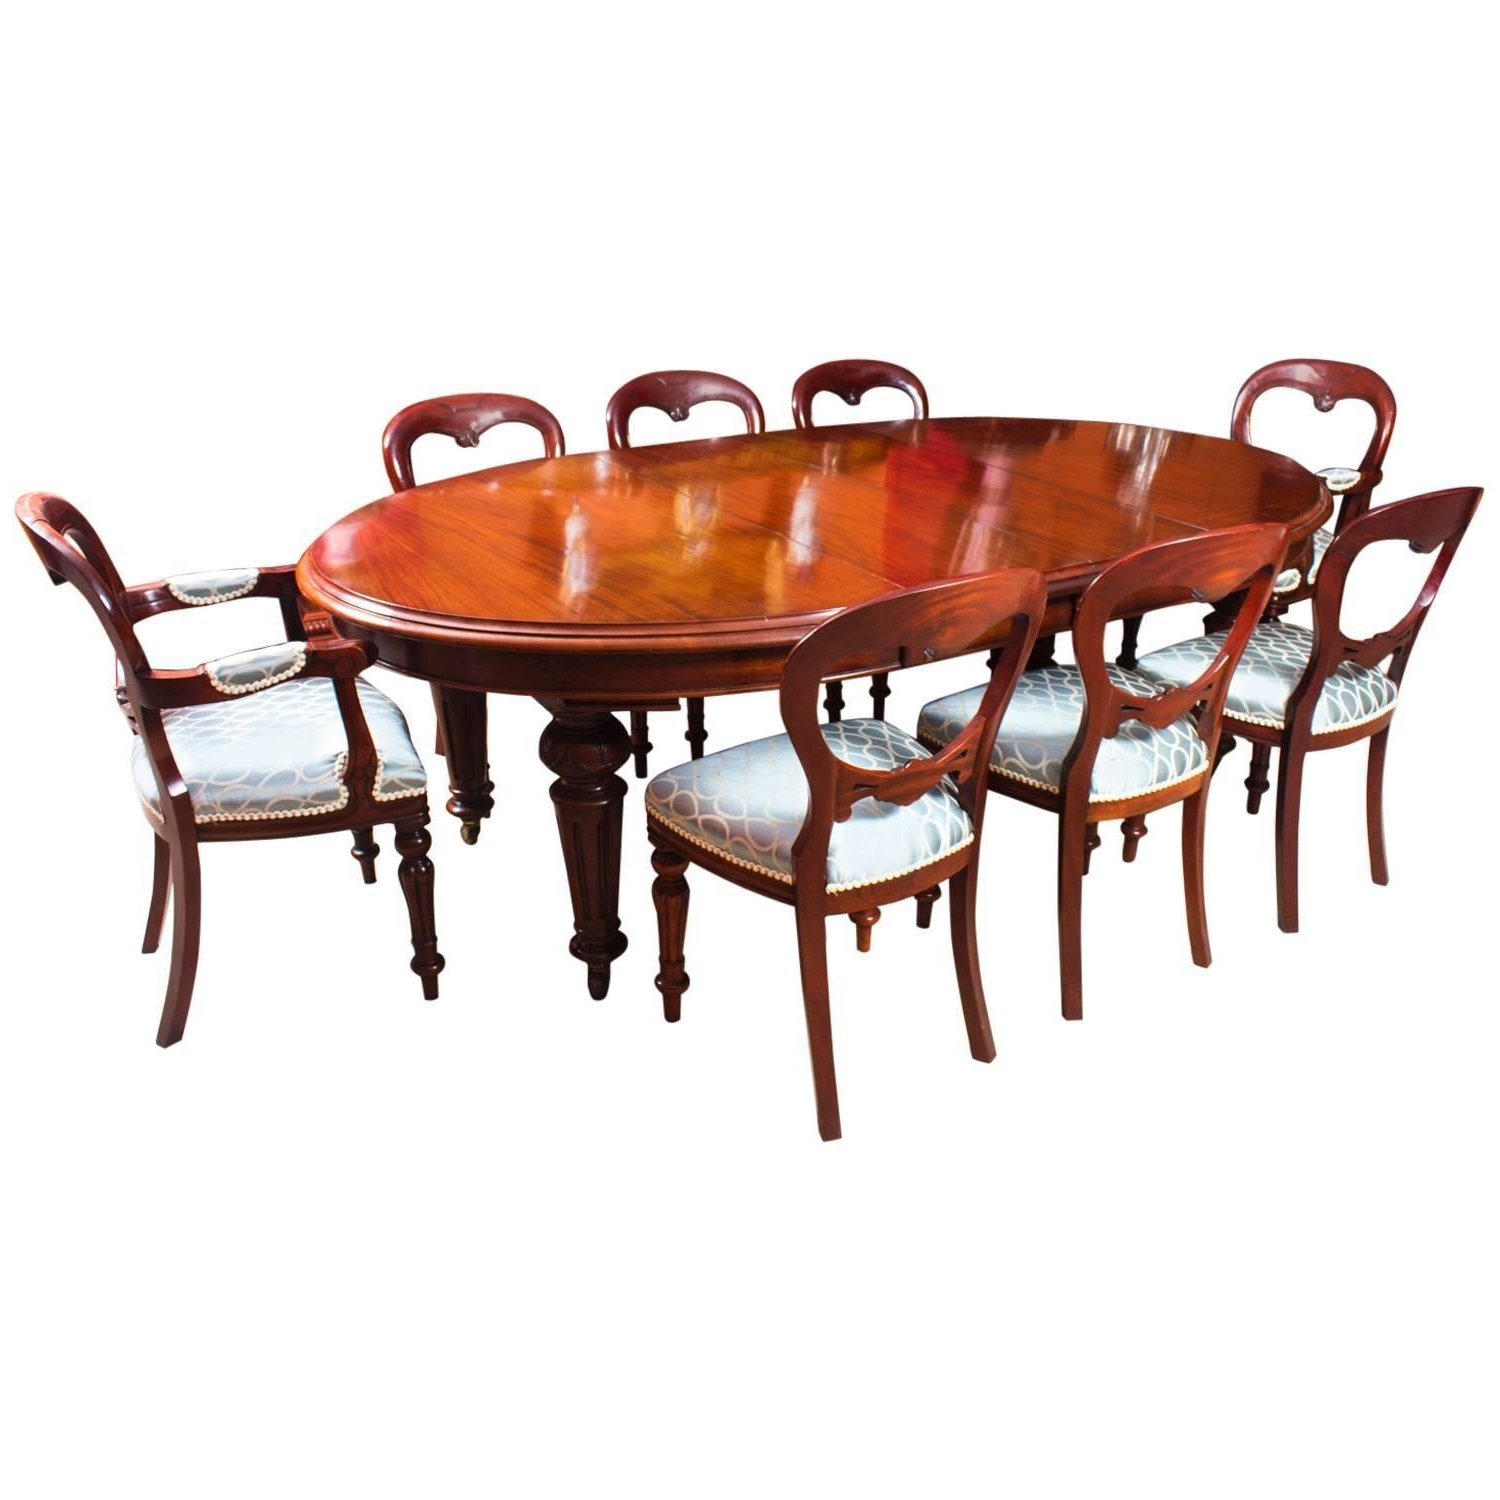 Dining Tables And 8 Chairs For Sale Within Most Up To Date Antique Victorian Oval Dining Table 8 Chairs Antique Wooden Dining (View 15 of 25)